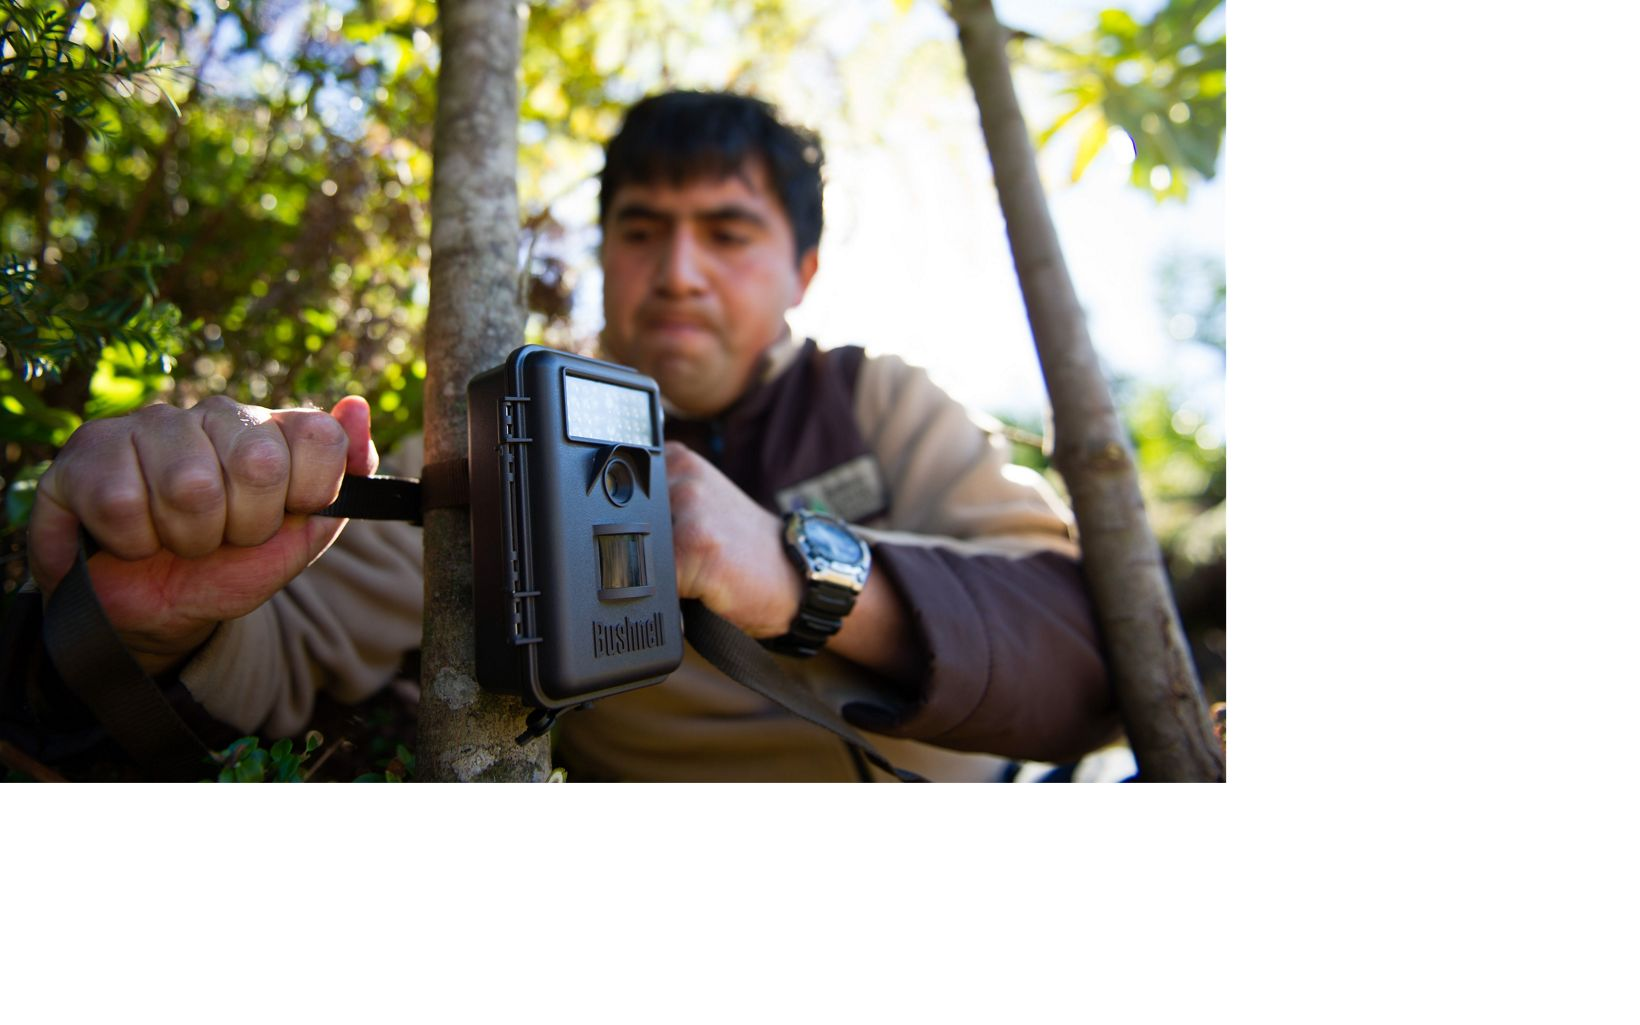 Erwin Ovando, one of the Valdivian Coastal Reserve park guards, positions a remote camera.